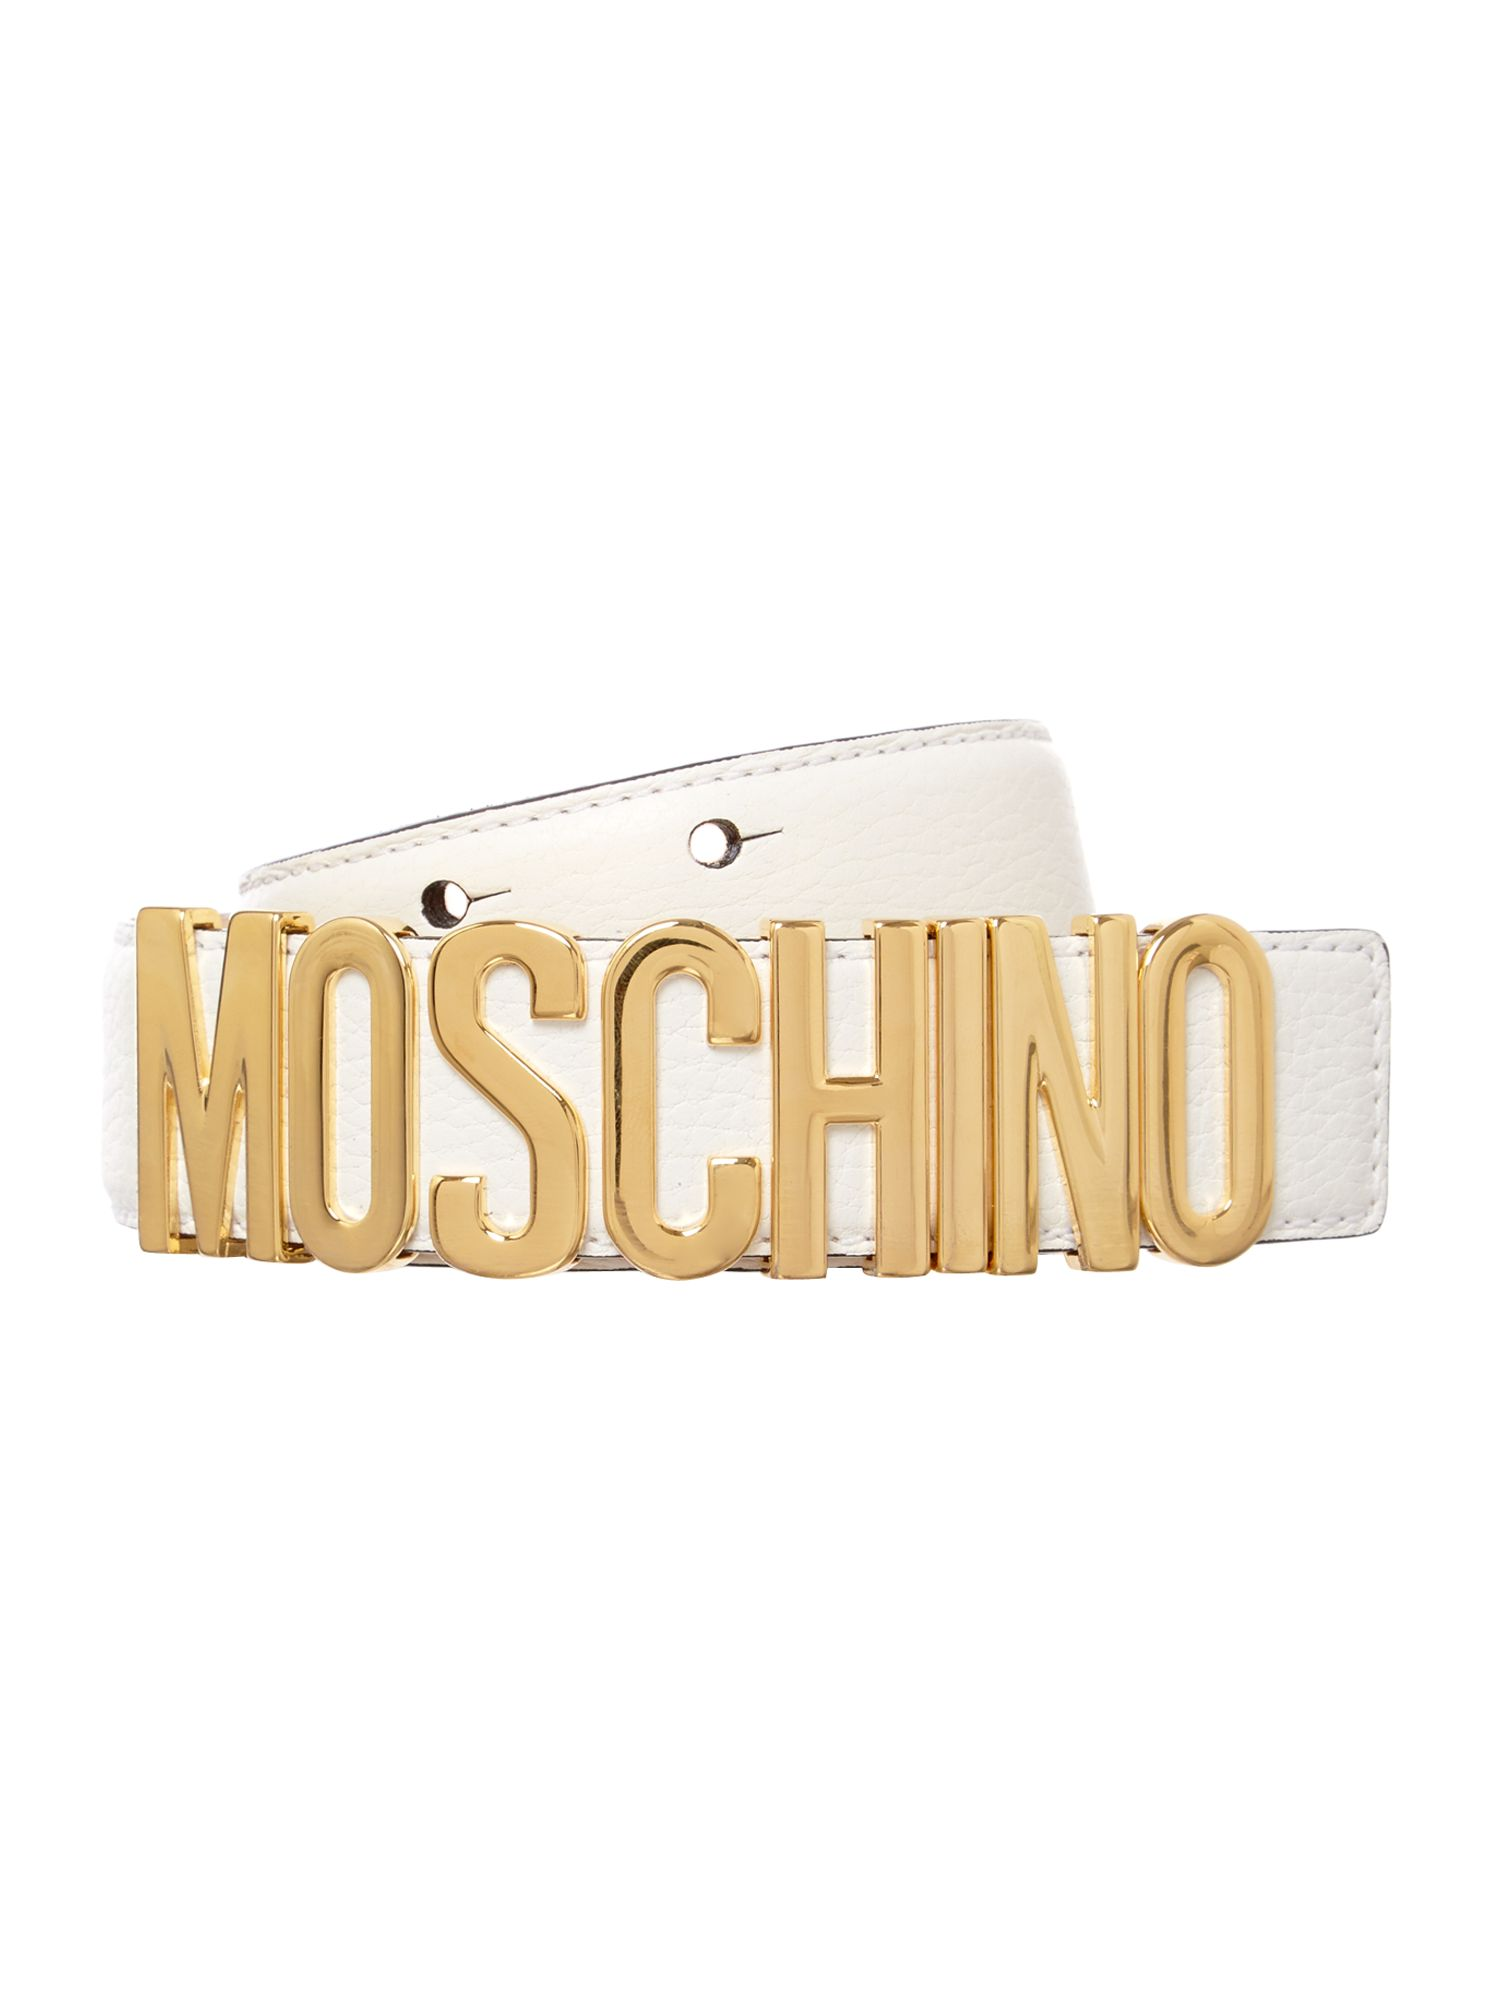 White logo belt